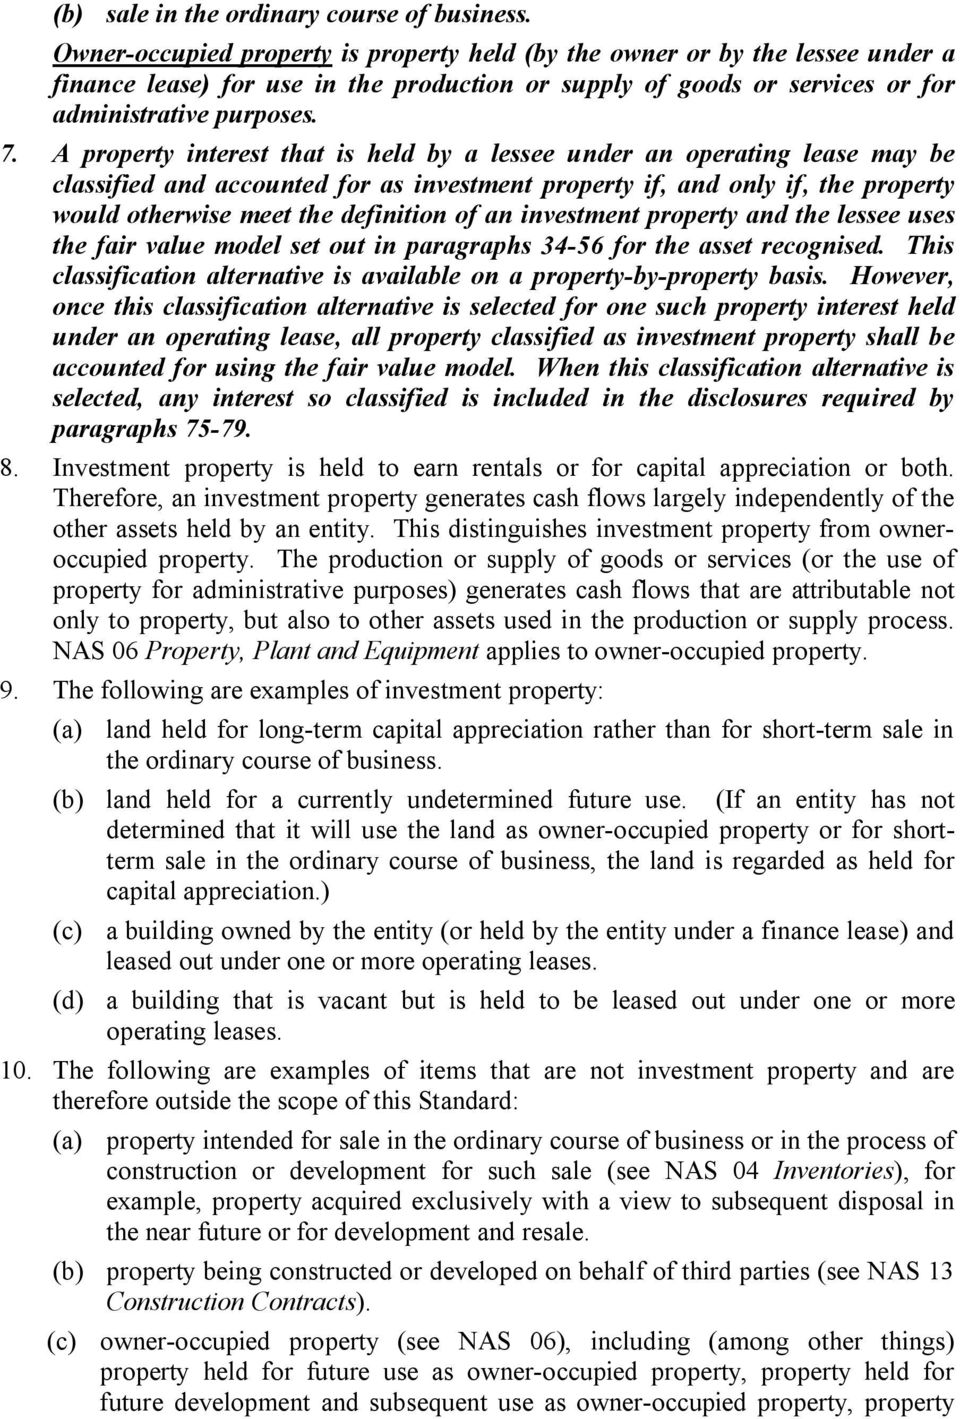 A property interest that is held by a lessee under an operating lease may be classified and accounted for as investment property if, and only if, the property would otherwise meet the definition of